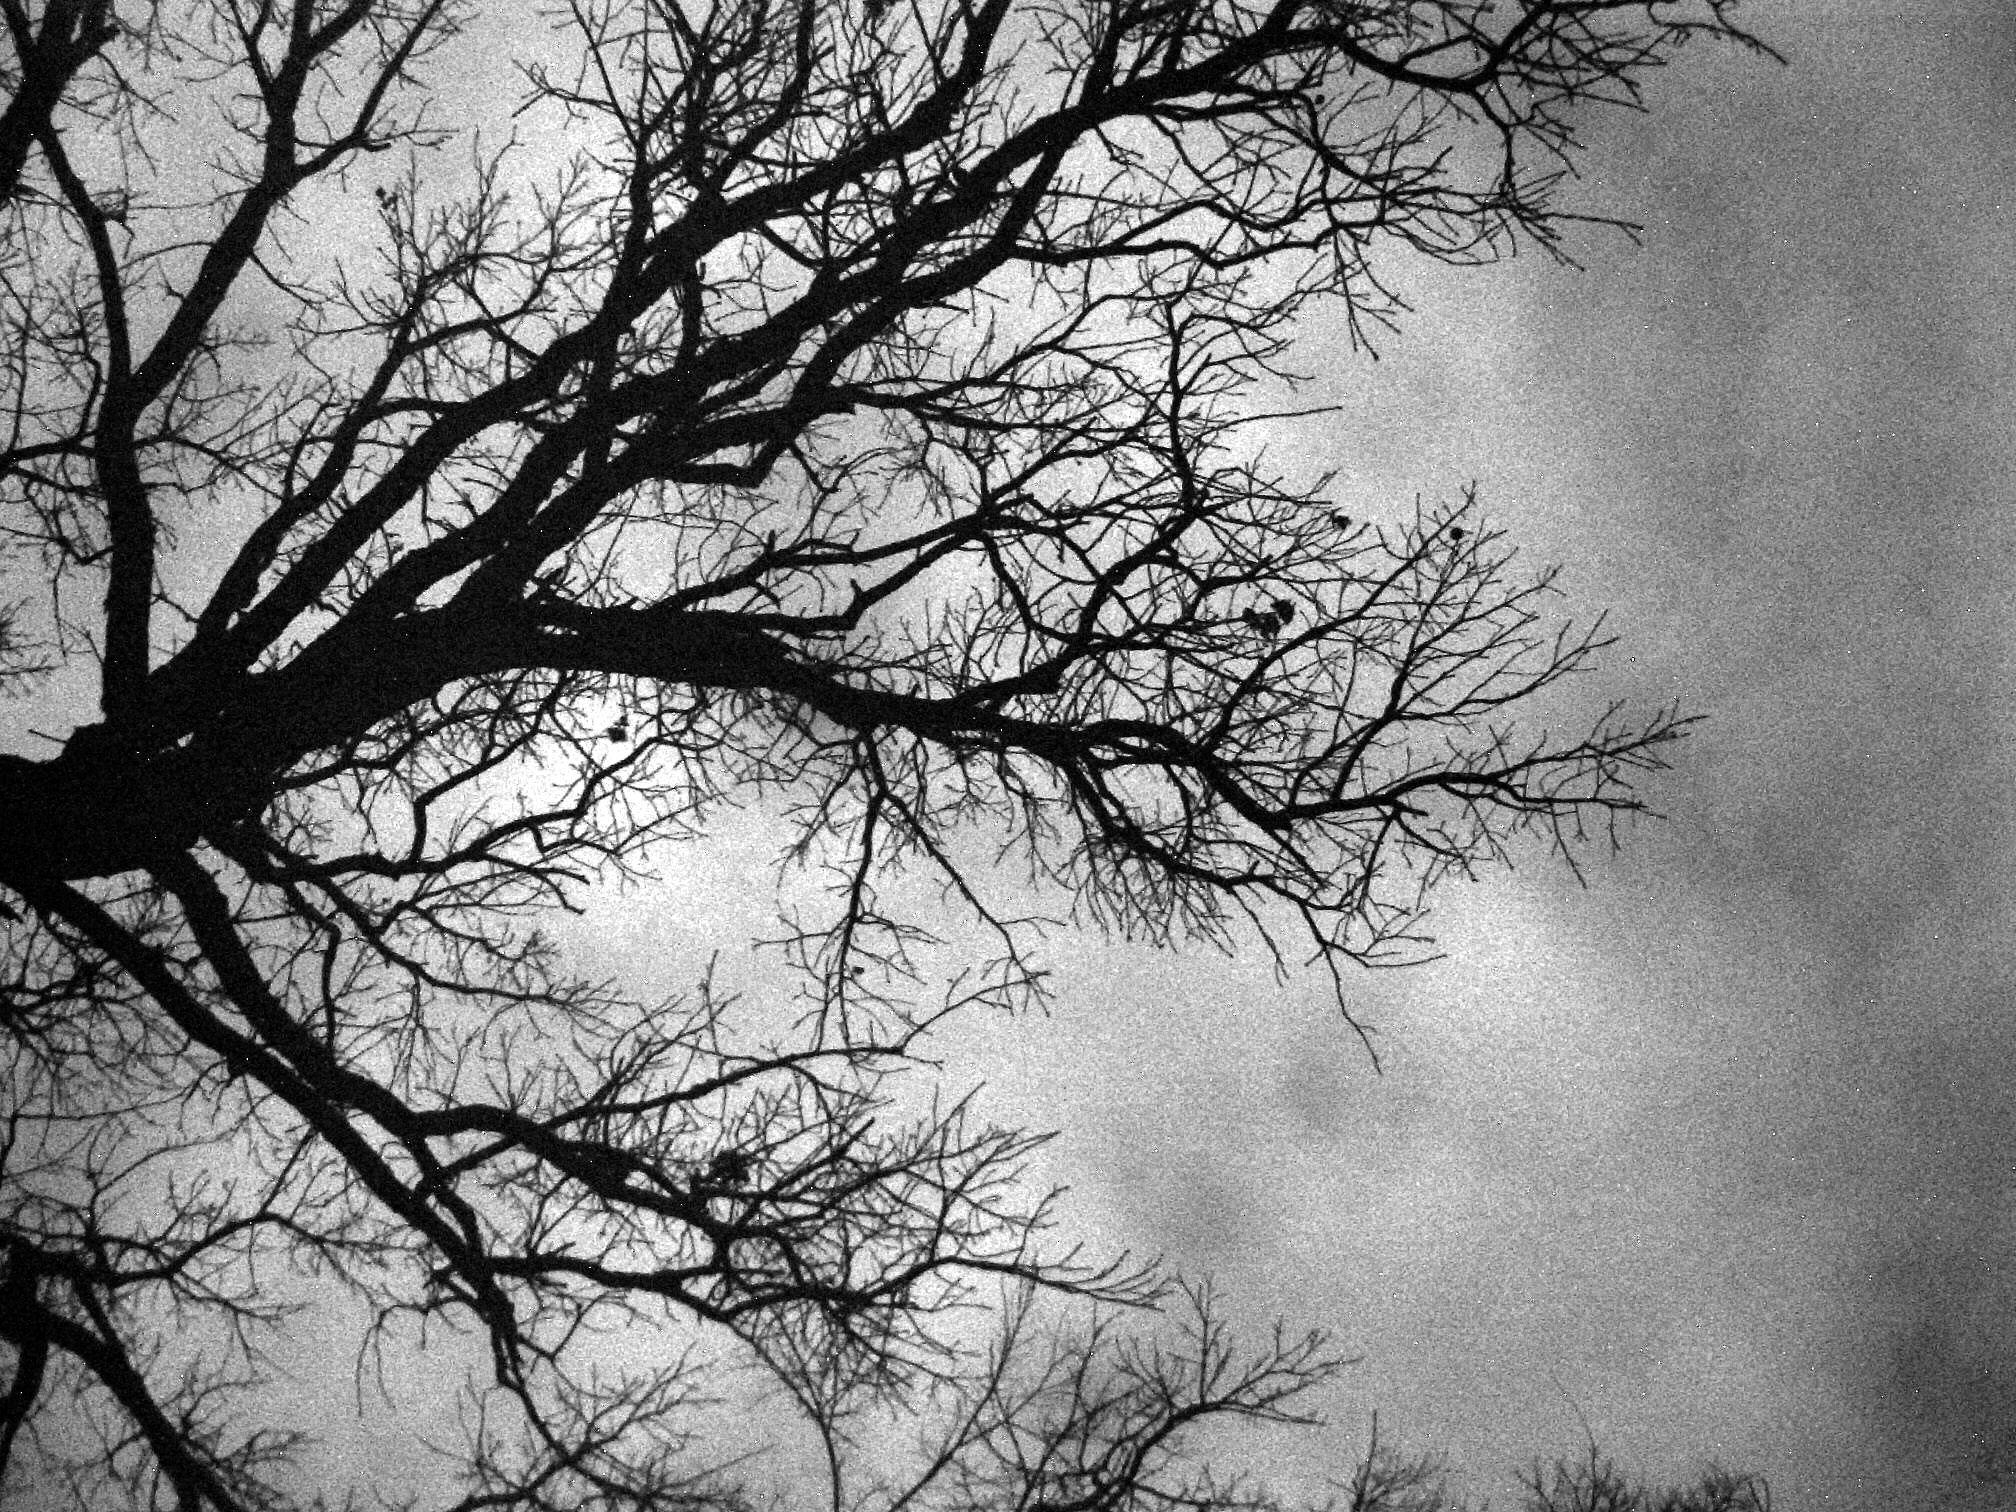 Black And White Images Of Trees 28 Free Hd Wallpaper